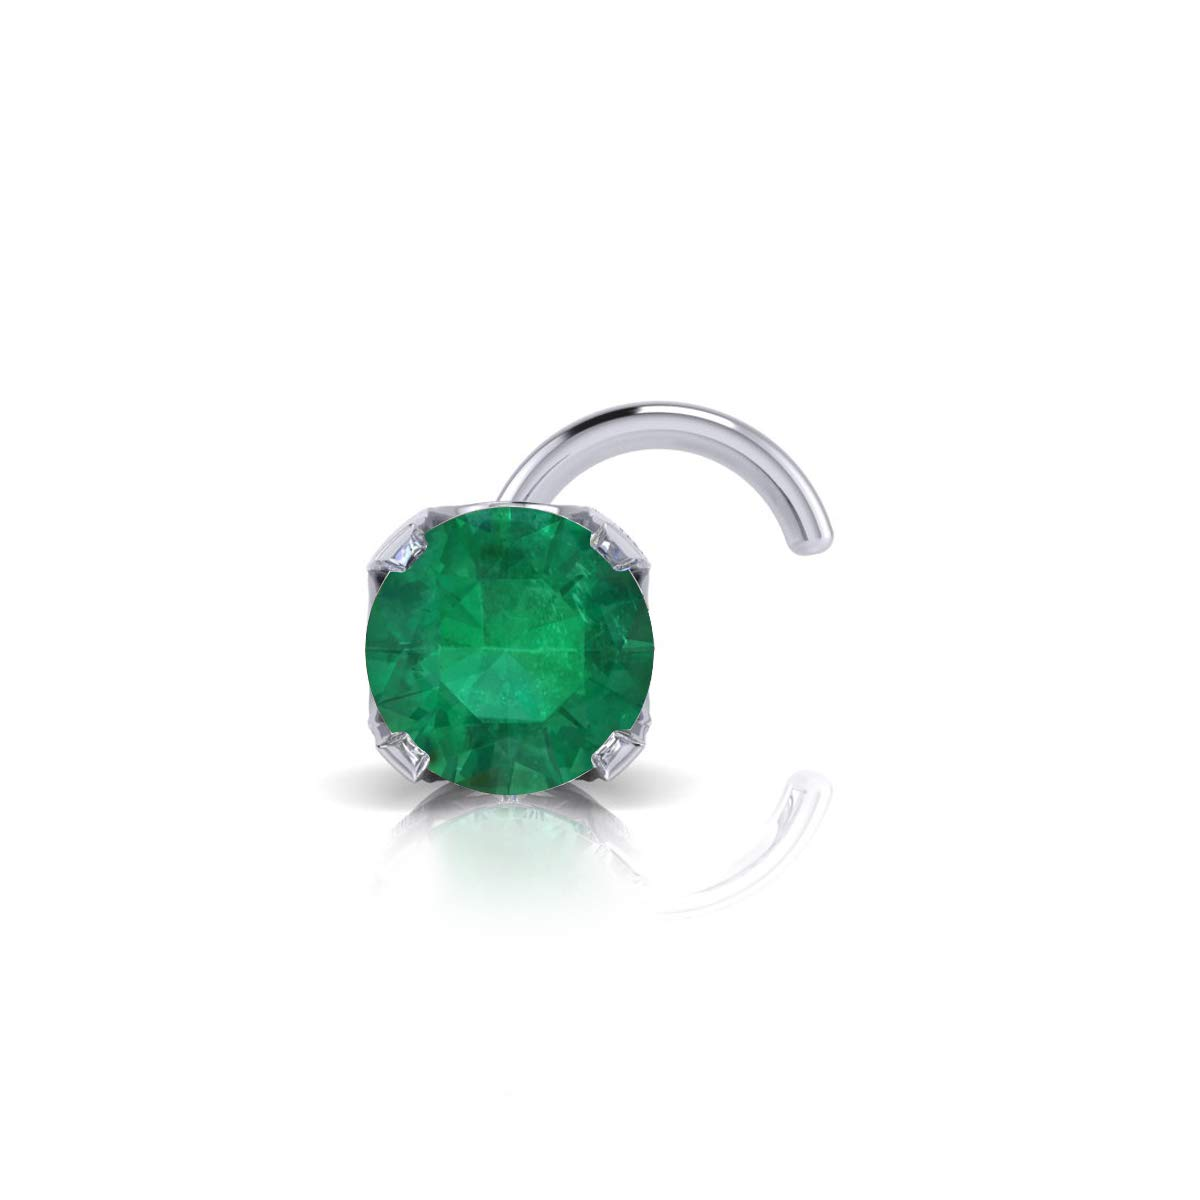 2mm 0.03 Carat Emerald Stud Nose Ring In 14K White Gold by Sparkle Bargains